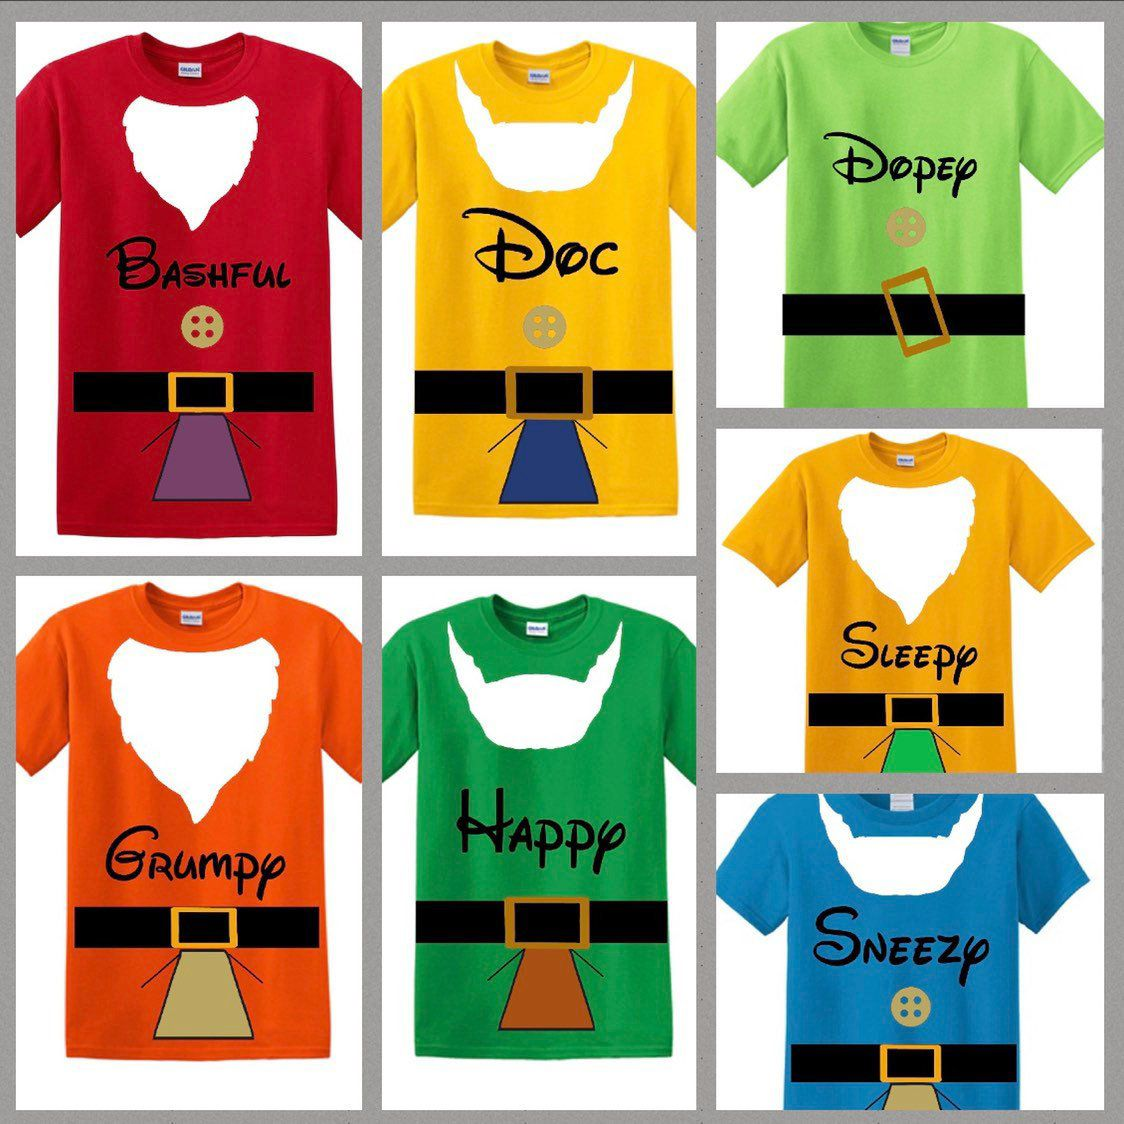 448a5af1 7 Dwarf Shirts, 7 Dwarfs Shirts, 7 Dwarf Family Shirts, Snow White and